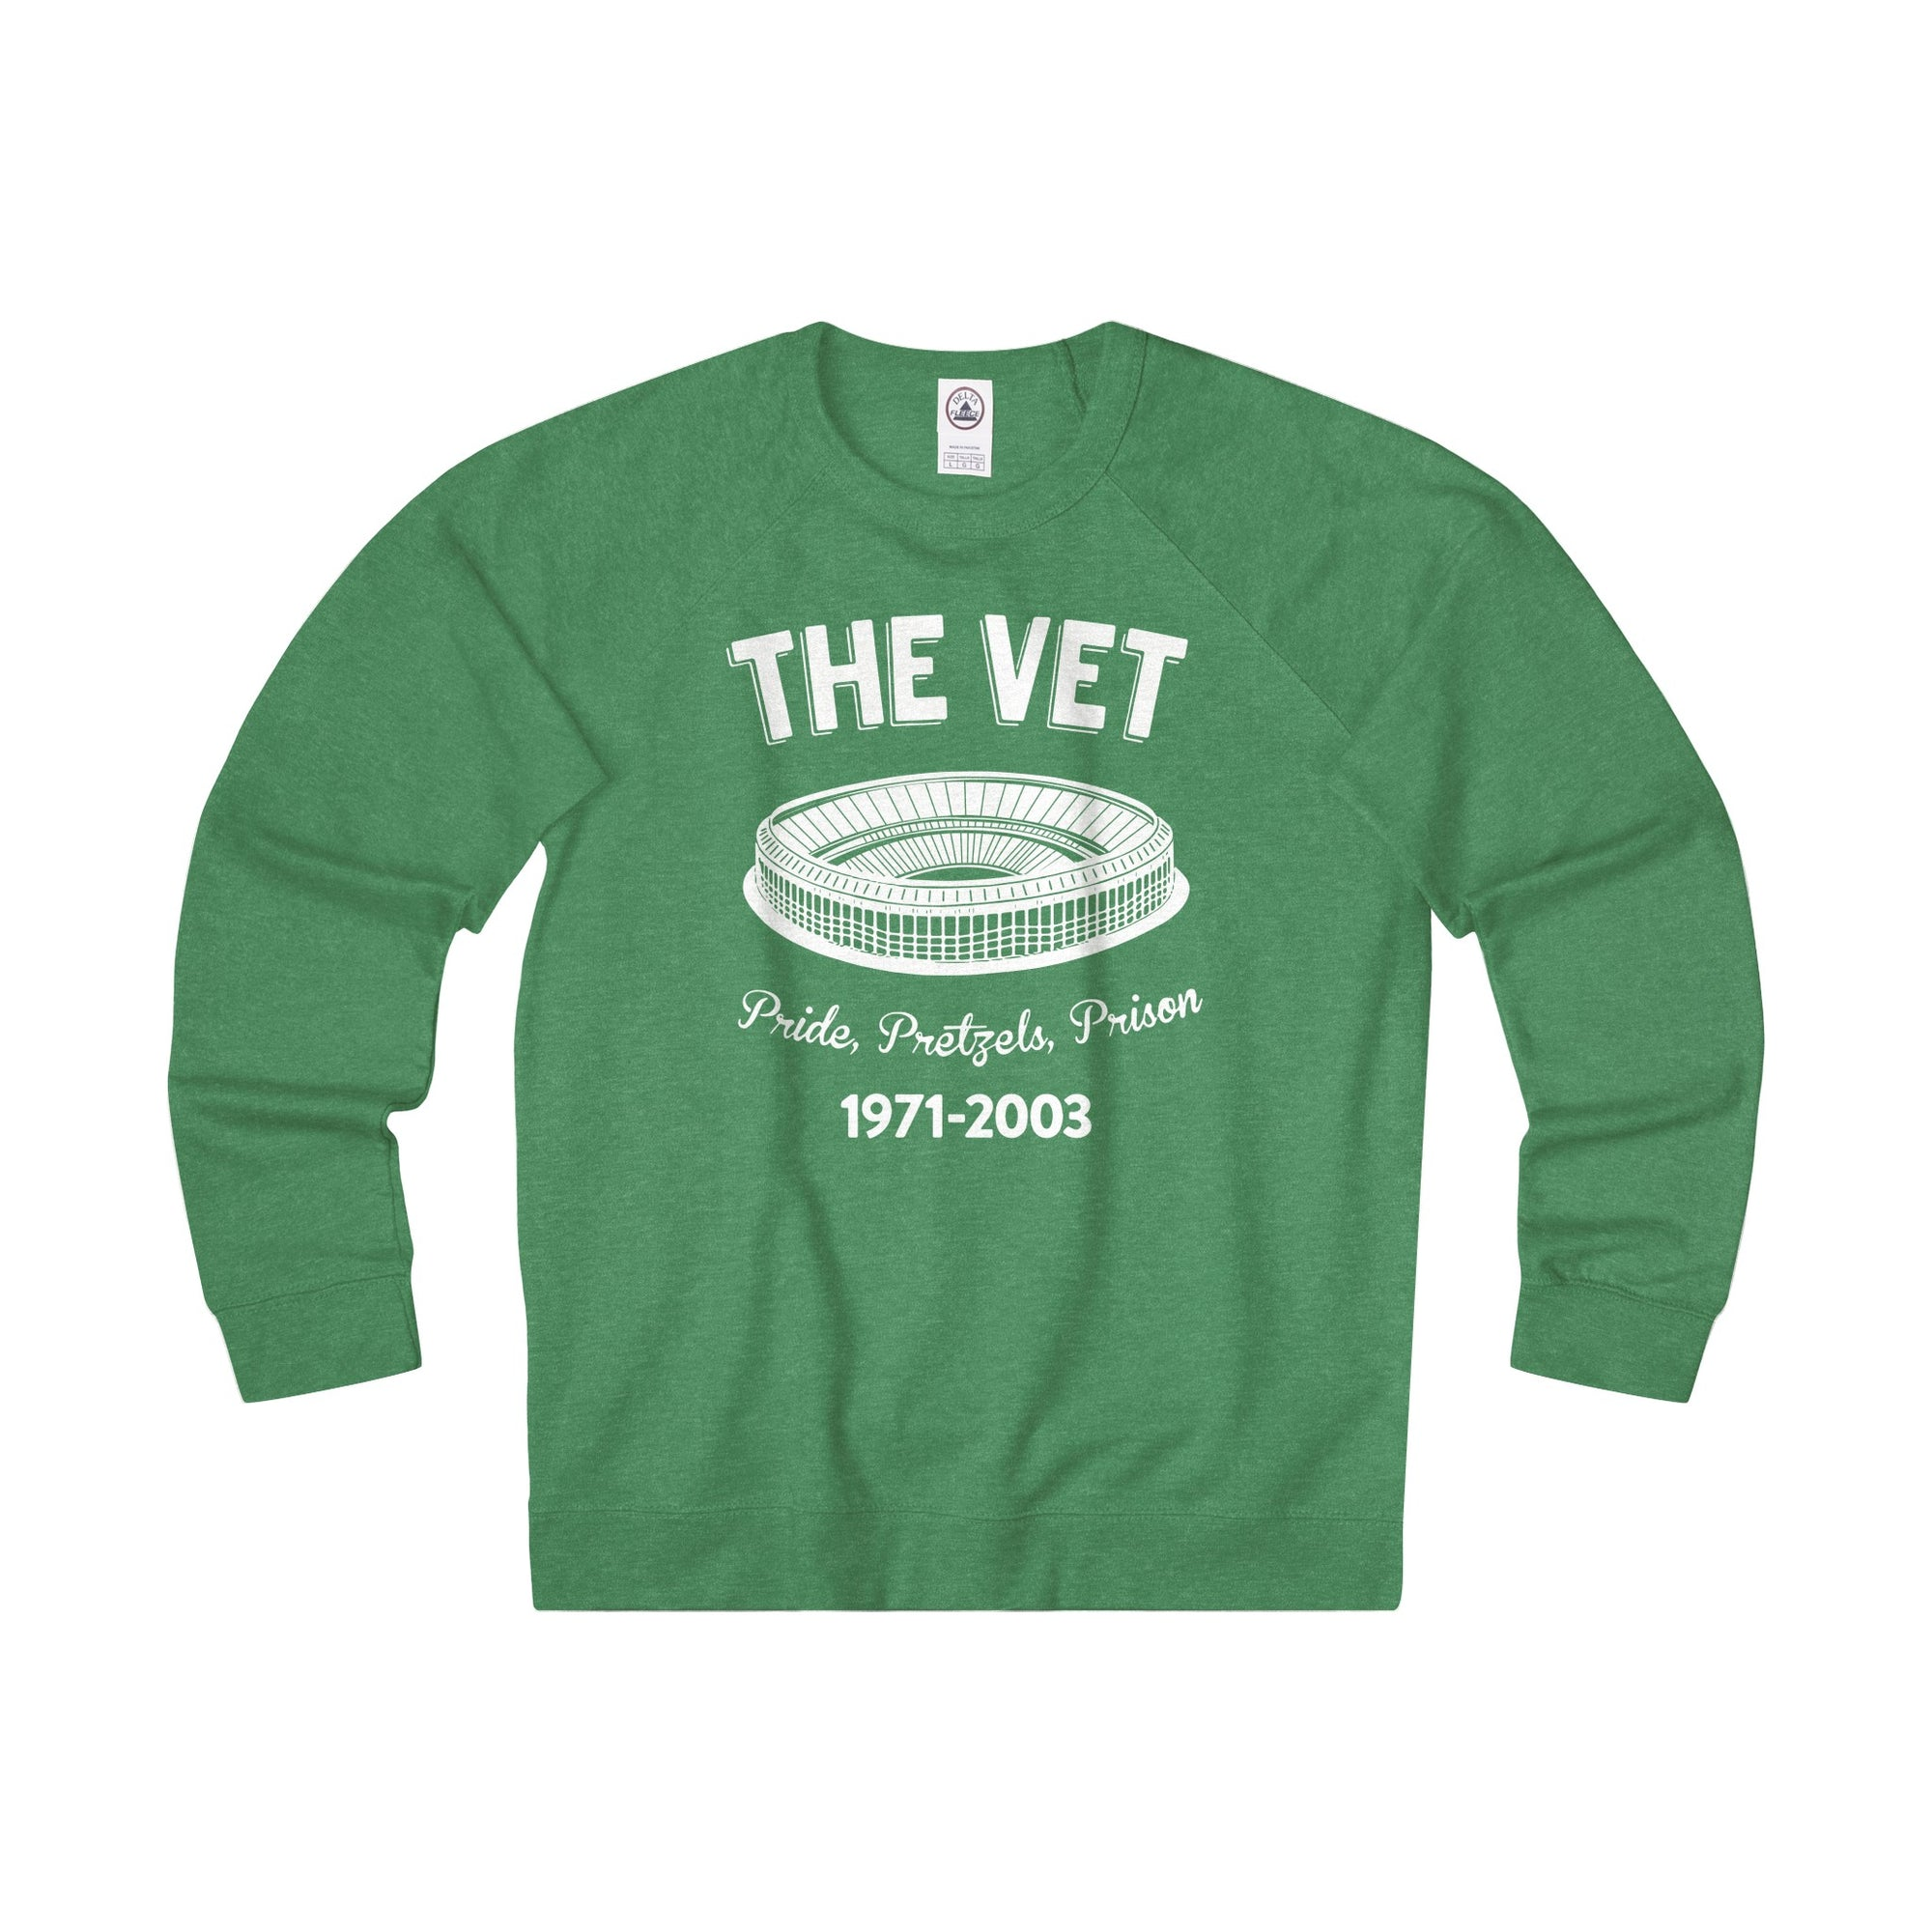 The Vet Retro Adult Unisex French Terry Crew - Generation T